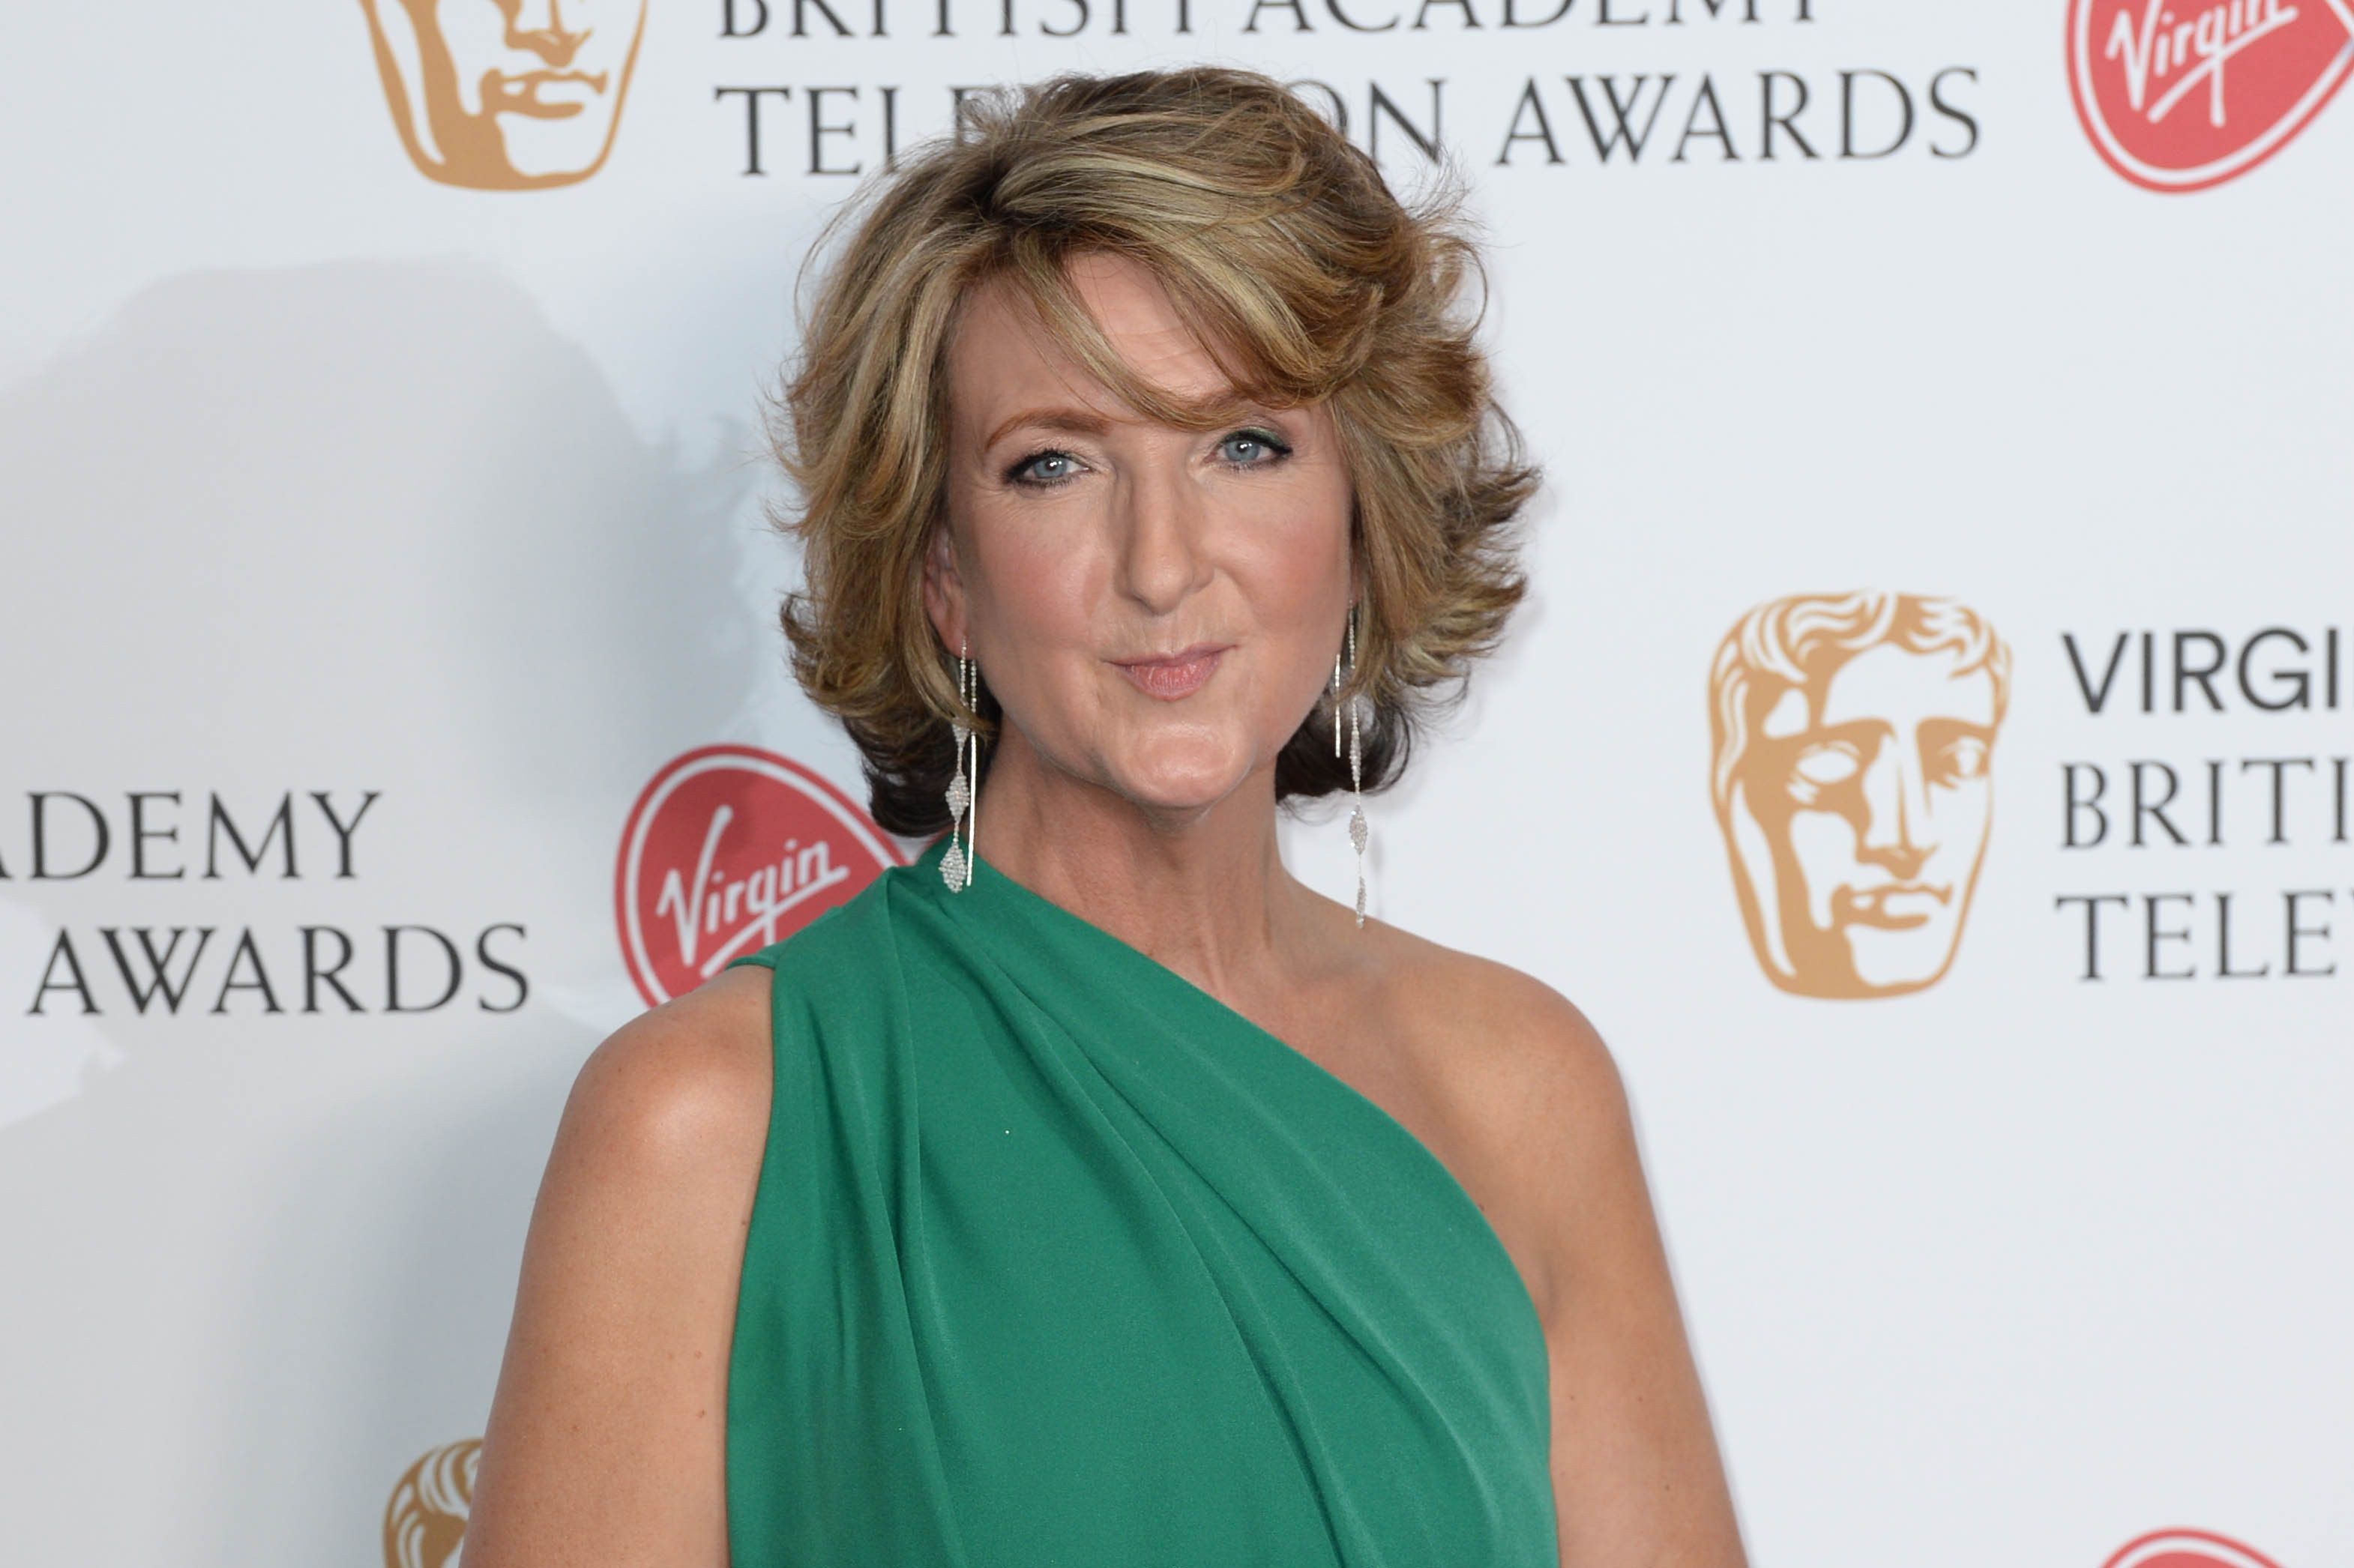 Victoria Derbyshire On How Her Breast Cancer Video Diary Gave Her 'A Sense Of